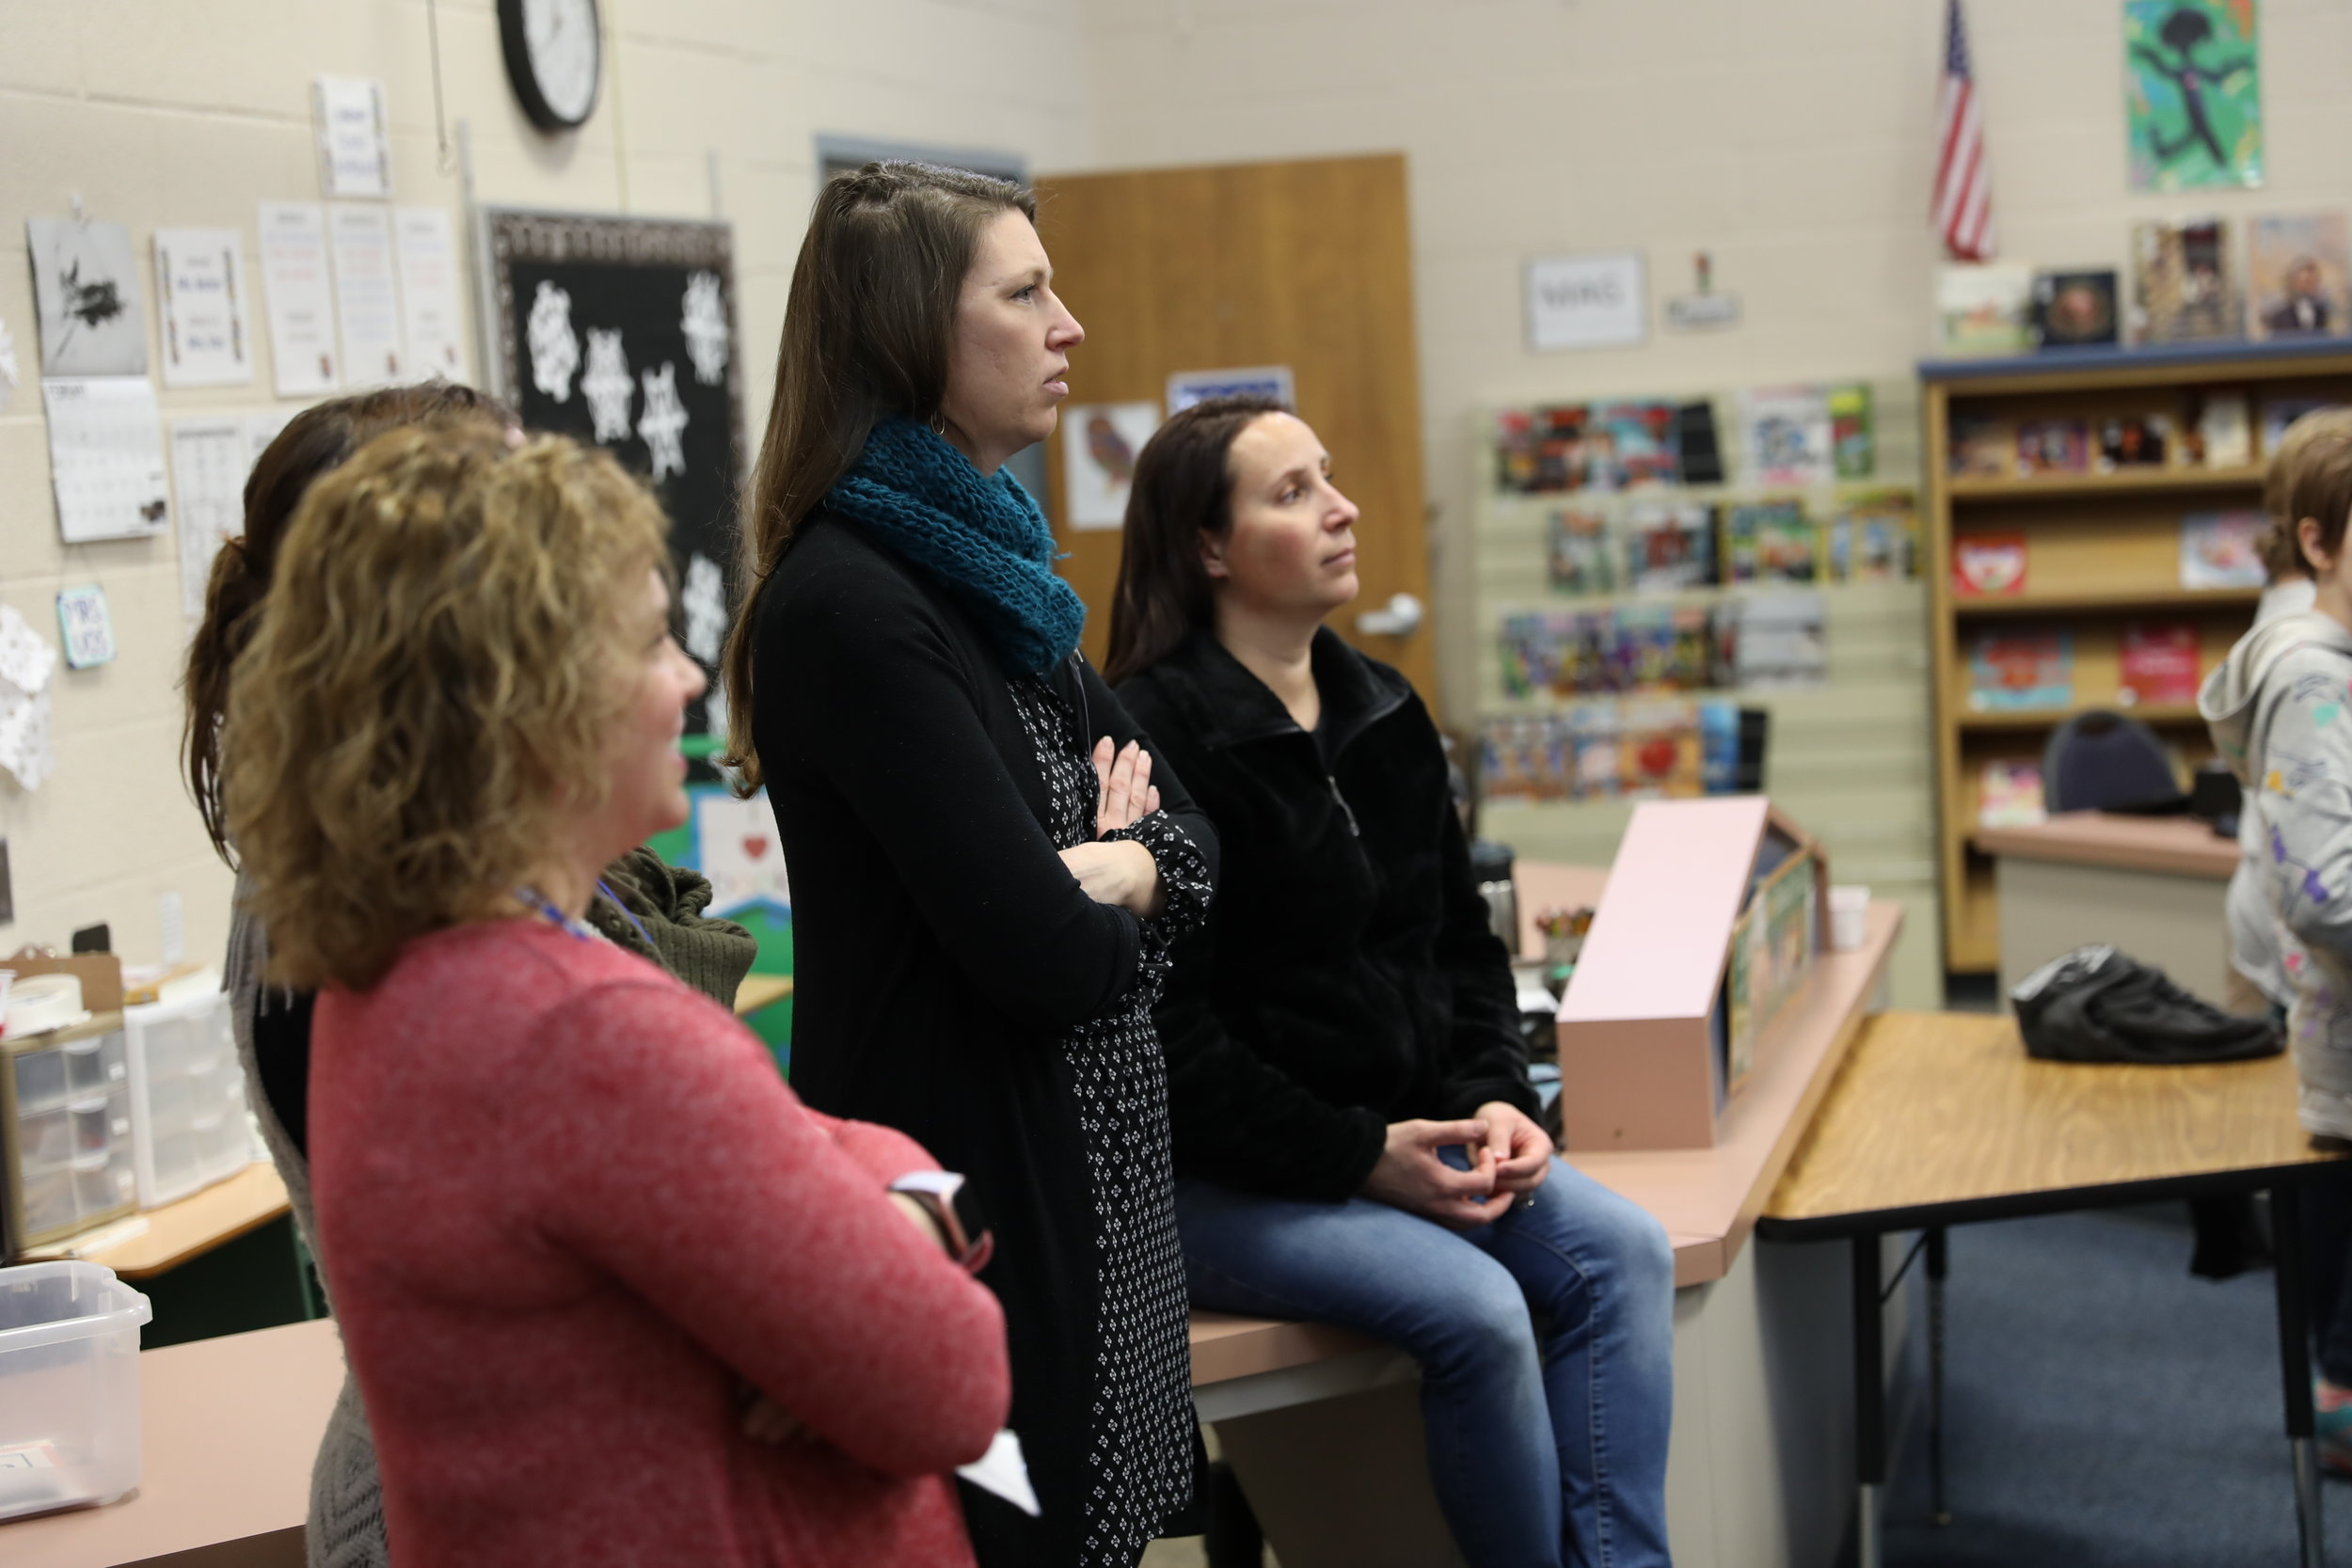 Parents listen to a teacher's instructions to be prepared to help students.